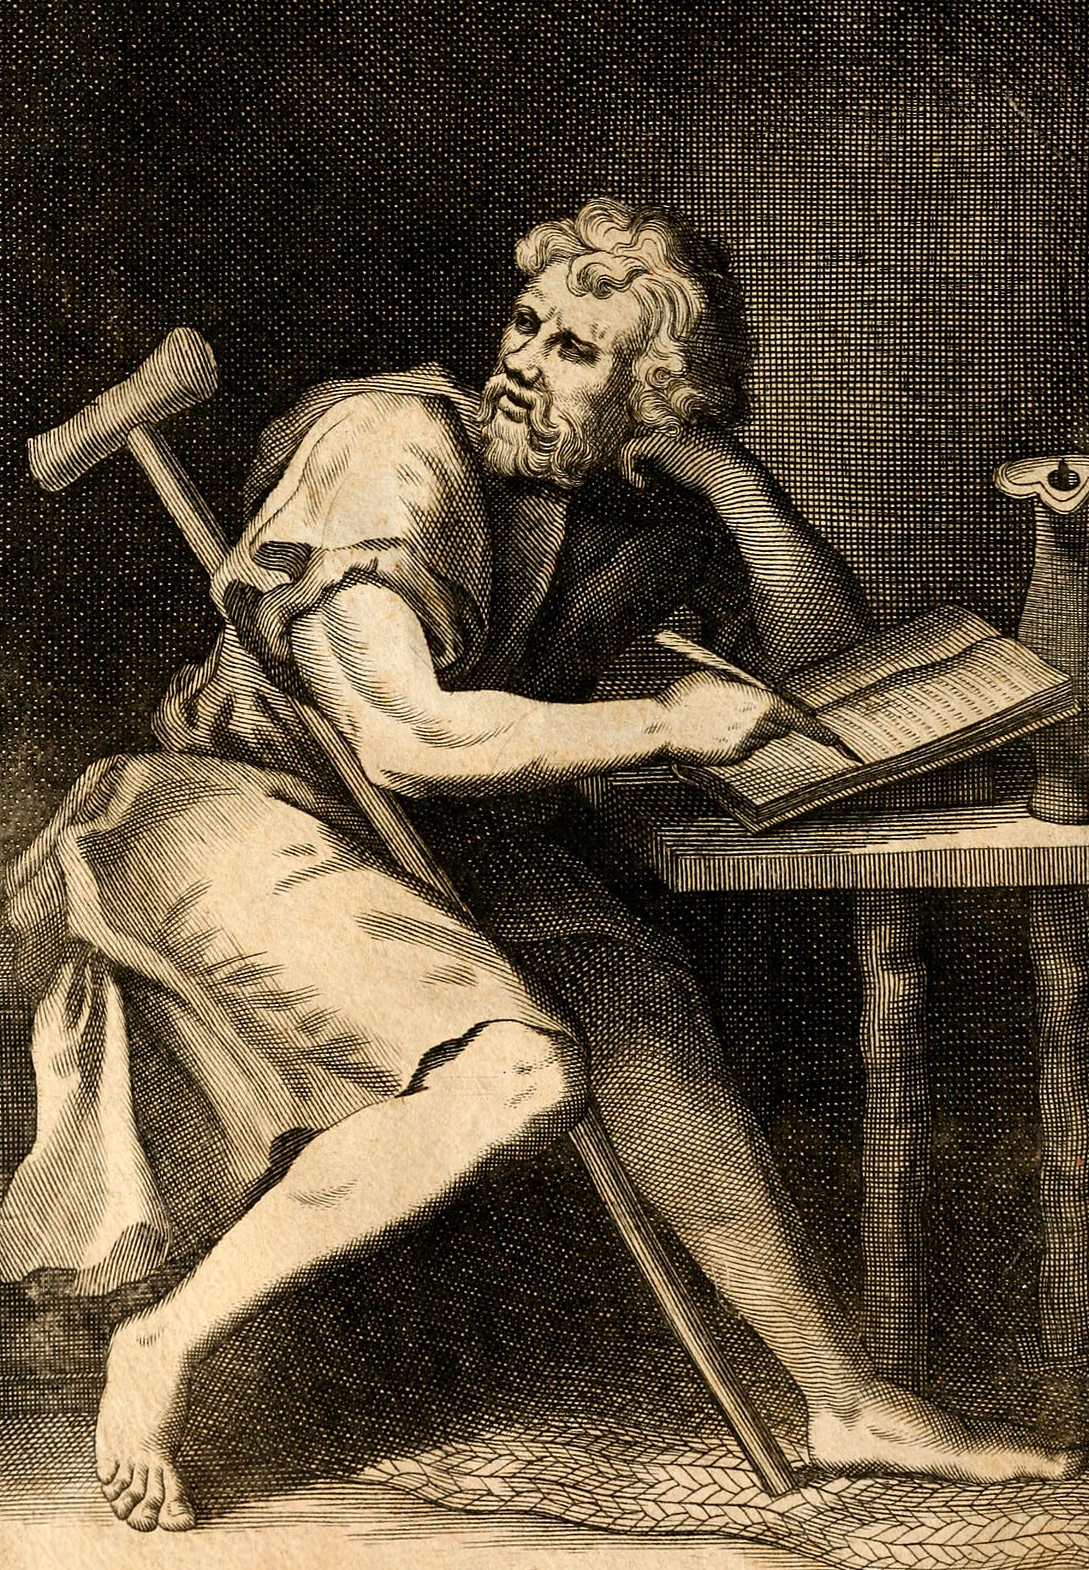 epictetus - 55–135 CE, born in Hierapolis, Turkey, died in Nicopolis, Greece. Stoic philosopher Epictetus was a slave owned by one of Nero's secretaries and obtained his freedom after Nero's death. According to Epictetus's student, Arrian, Epictetus was a powerful orator. Arrian recorded (on paper), transcribed, and compiled his discourses; no writings by Epictetus himself have ever been discovered. Epictetus distinguished between things in our power (prohairetic) and things not in our power (aprohairetic).That alone is in our power, which is our own work; and in this class are our opinions, impulses, desires, and aversions. What, on the contrary, is not in our power, are our bodies, possessions, glory, and power. Any delusion on this point leads to the greatest errors, misfortunes, and troubles, and to the slavery of the soul.